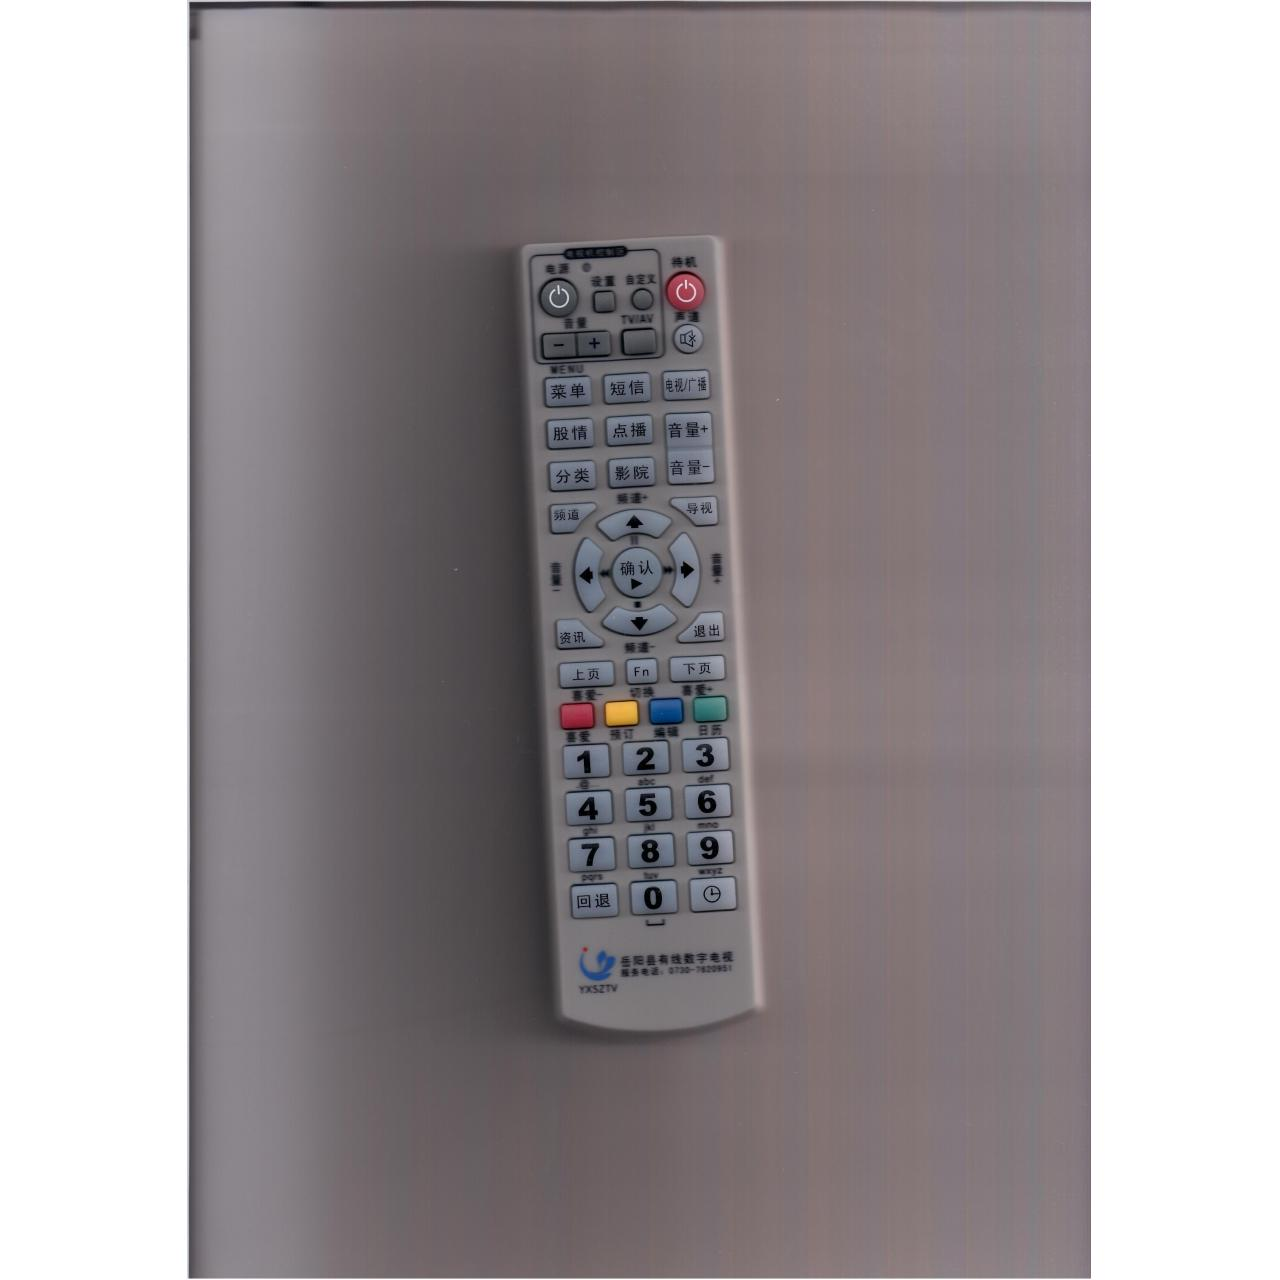 Buy cheap Learning remote control CD-523 from wholesalers